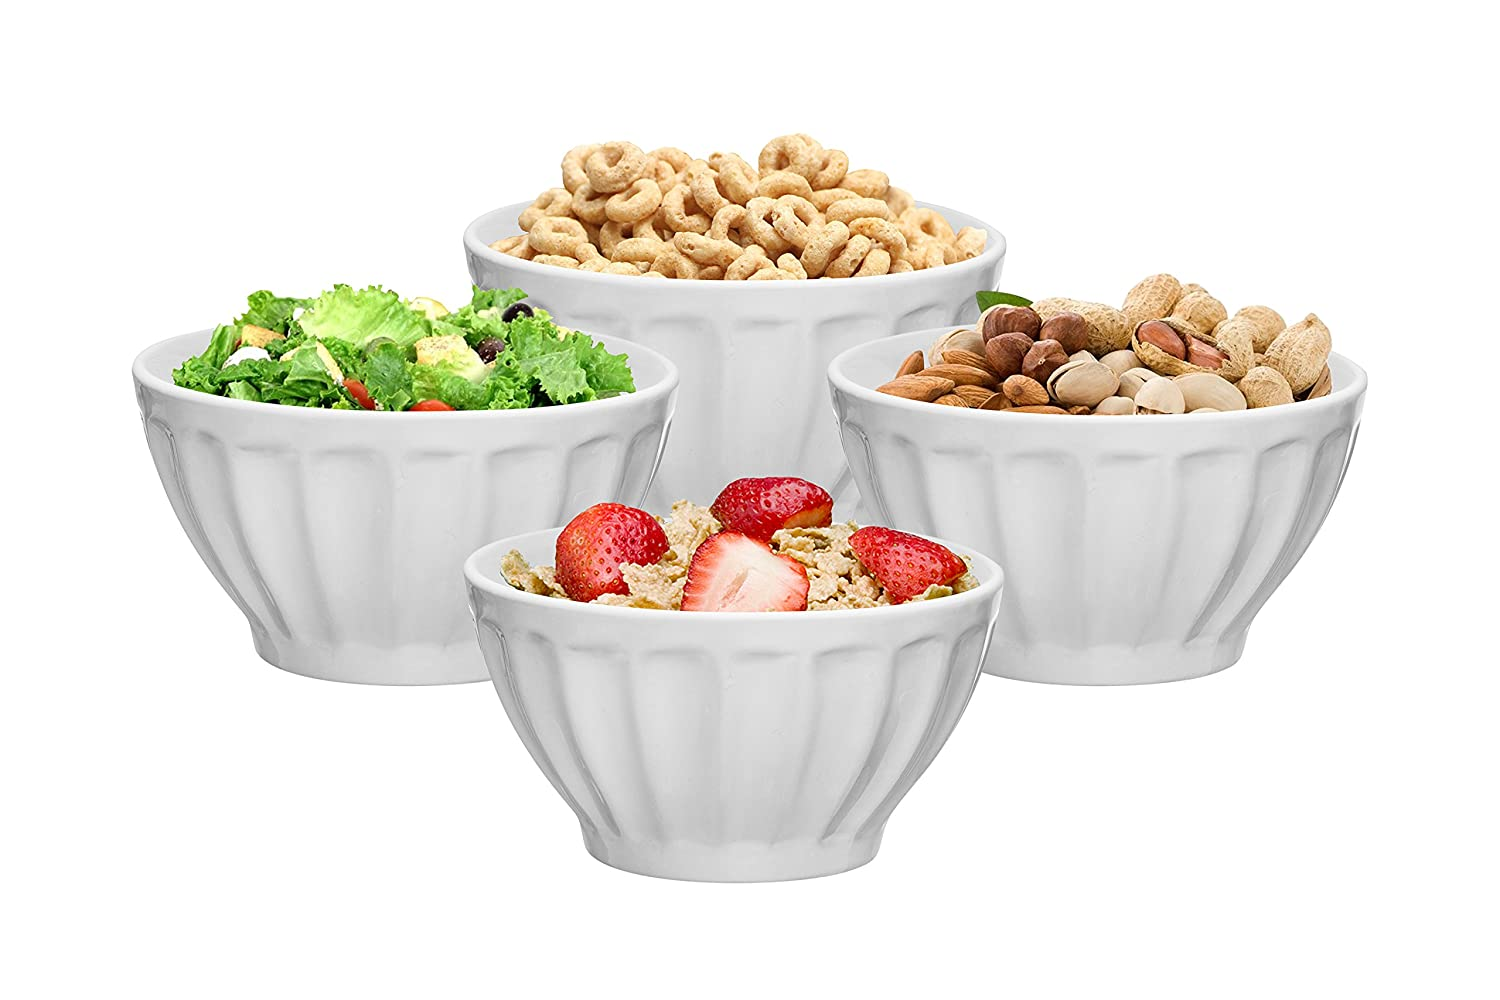 Ceramic Groove Bowls - Cereal, Soup, Ice Cream, 20 oz. Set of 4, by Bruntmor (White) BR3797